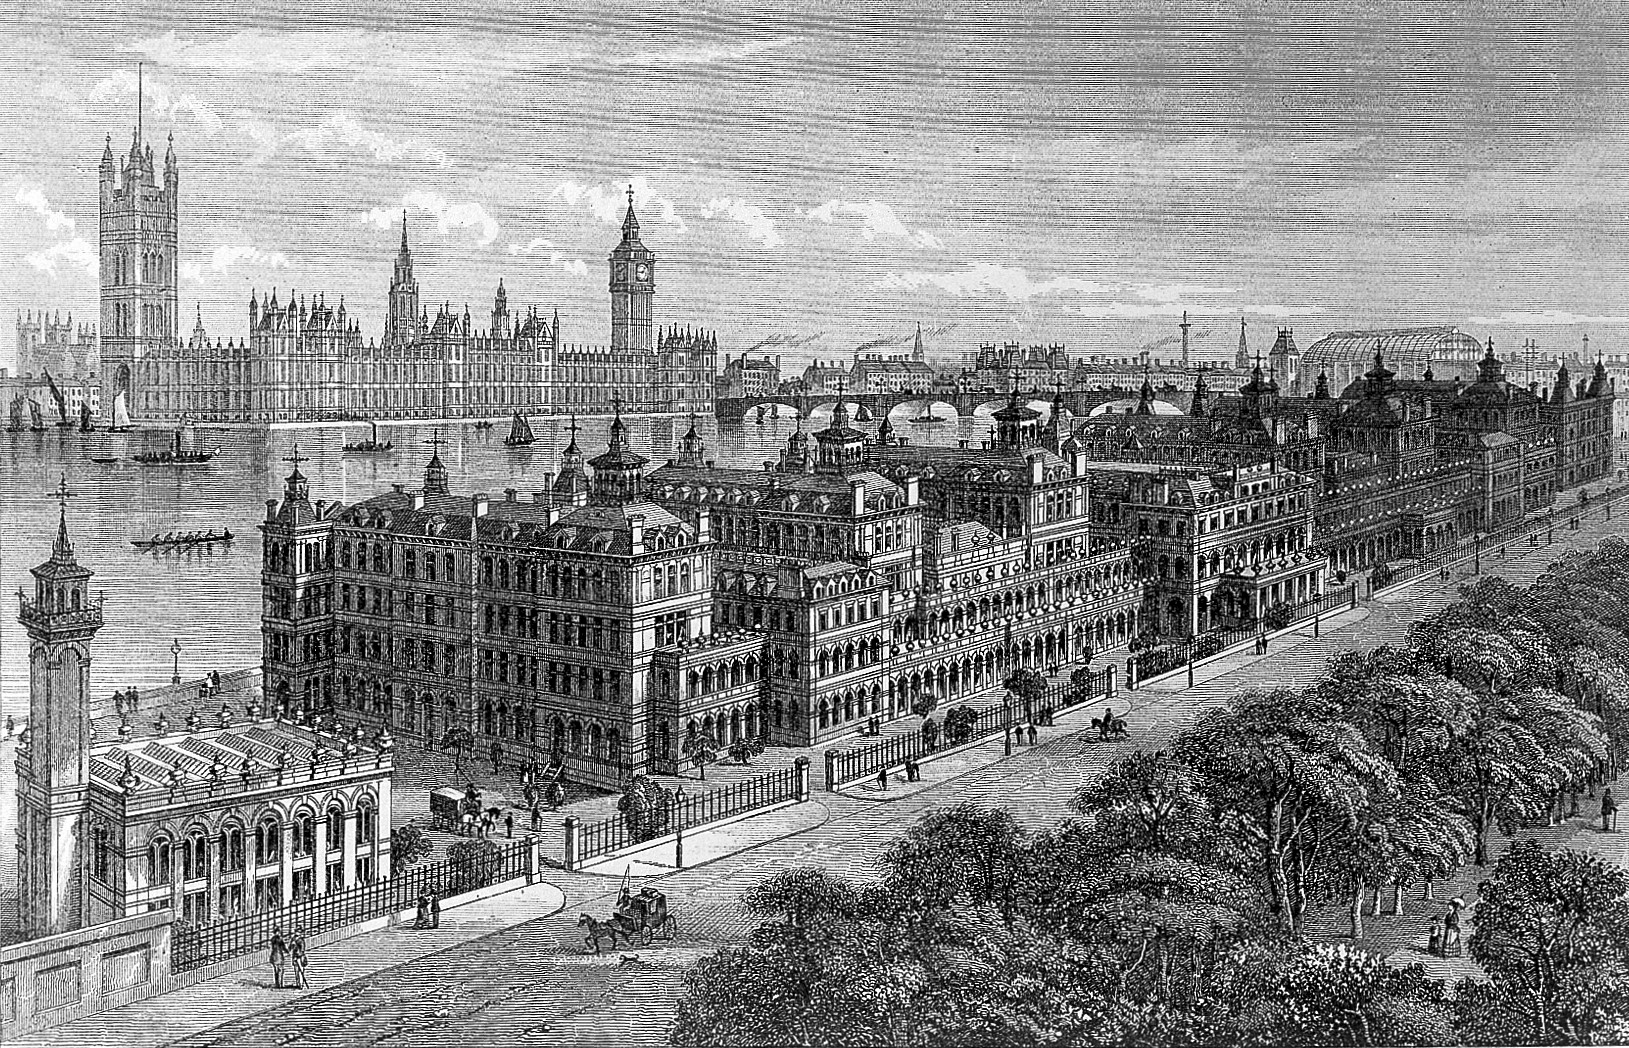 <strong>Figure 4.</strong> St. Thomas's Hospital, London, exterior bird's-eye view from south; anon., after an engraving made for Cassell's Old and New London. Credit: Wellcome Collection. CC BY.